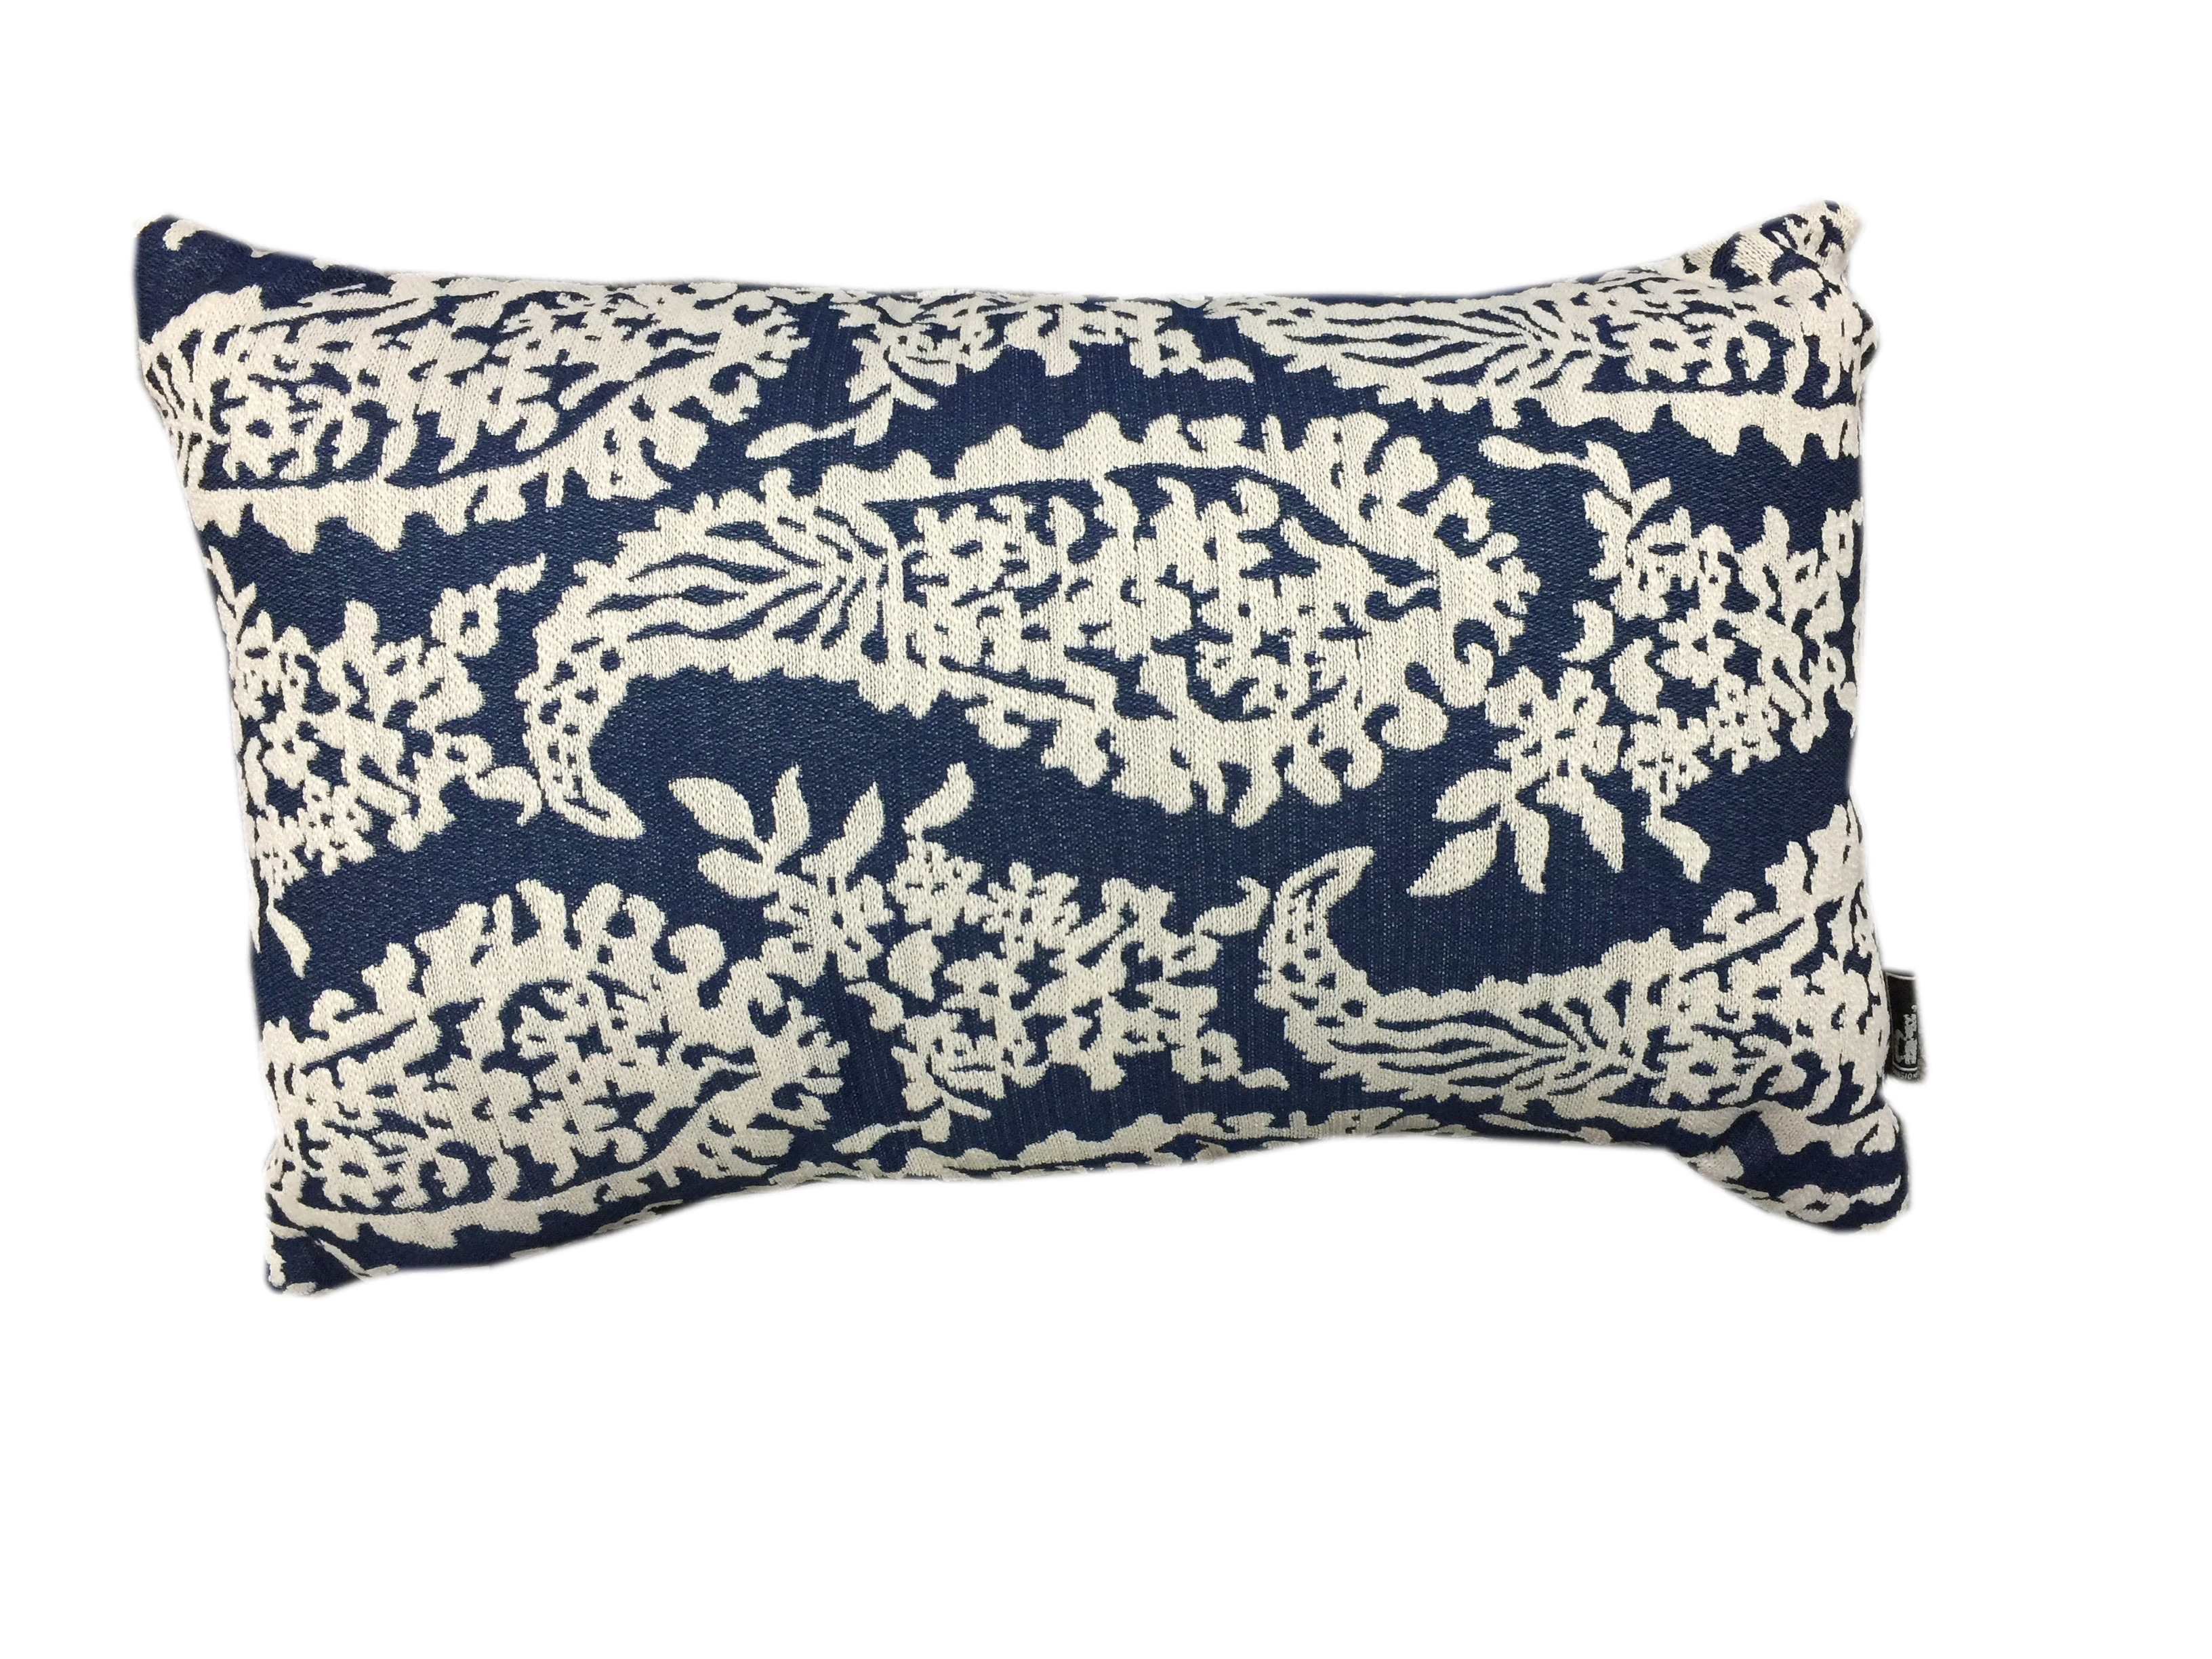 30x50 Oblong Cushion - Paisley Blue